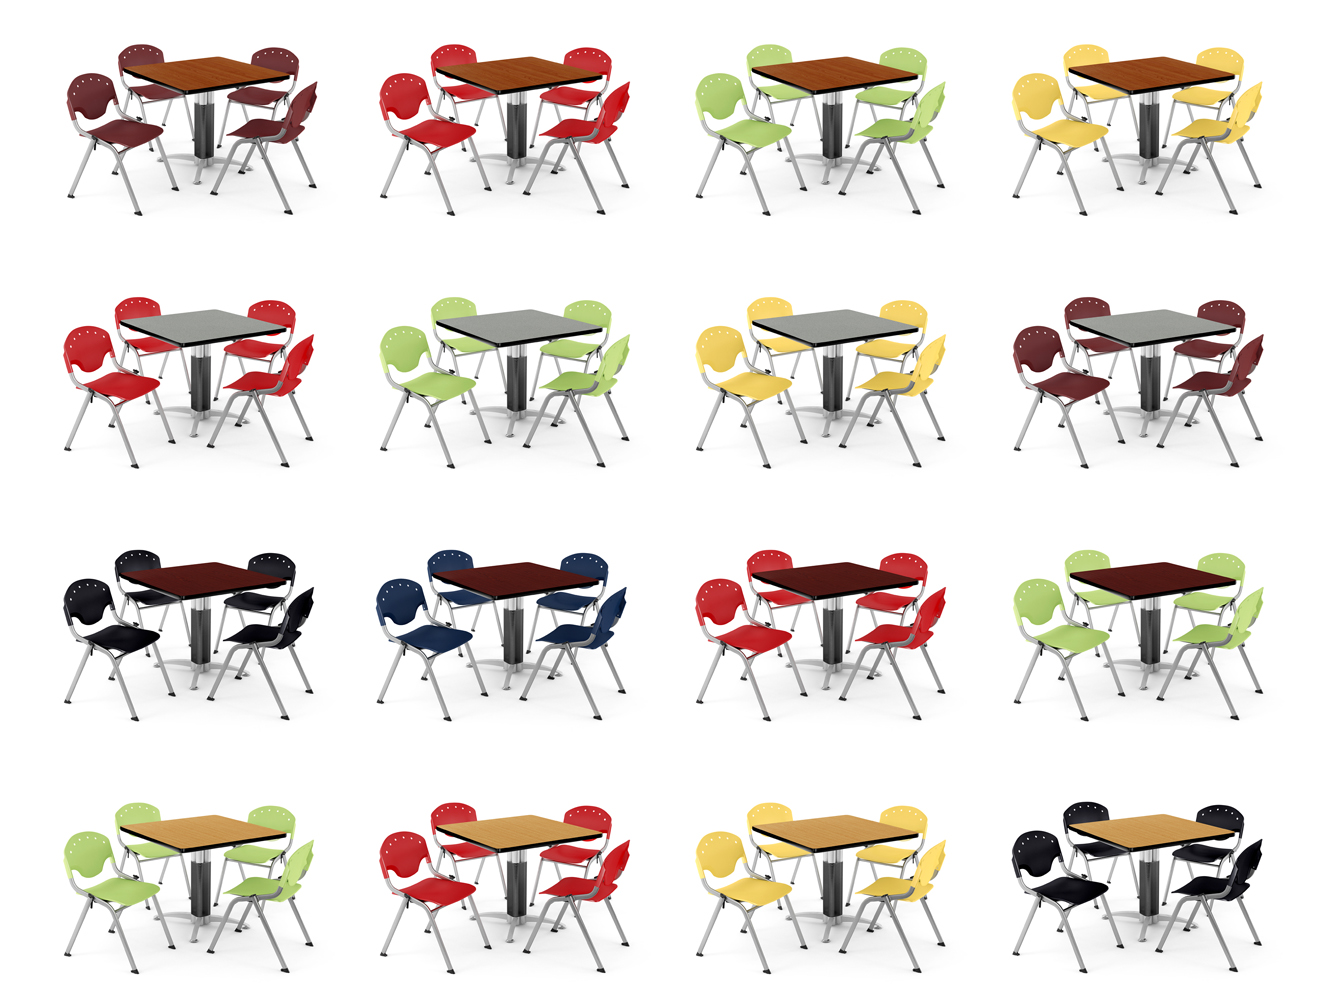 pix-us-cg-tables-chairs